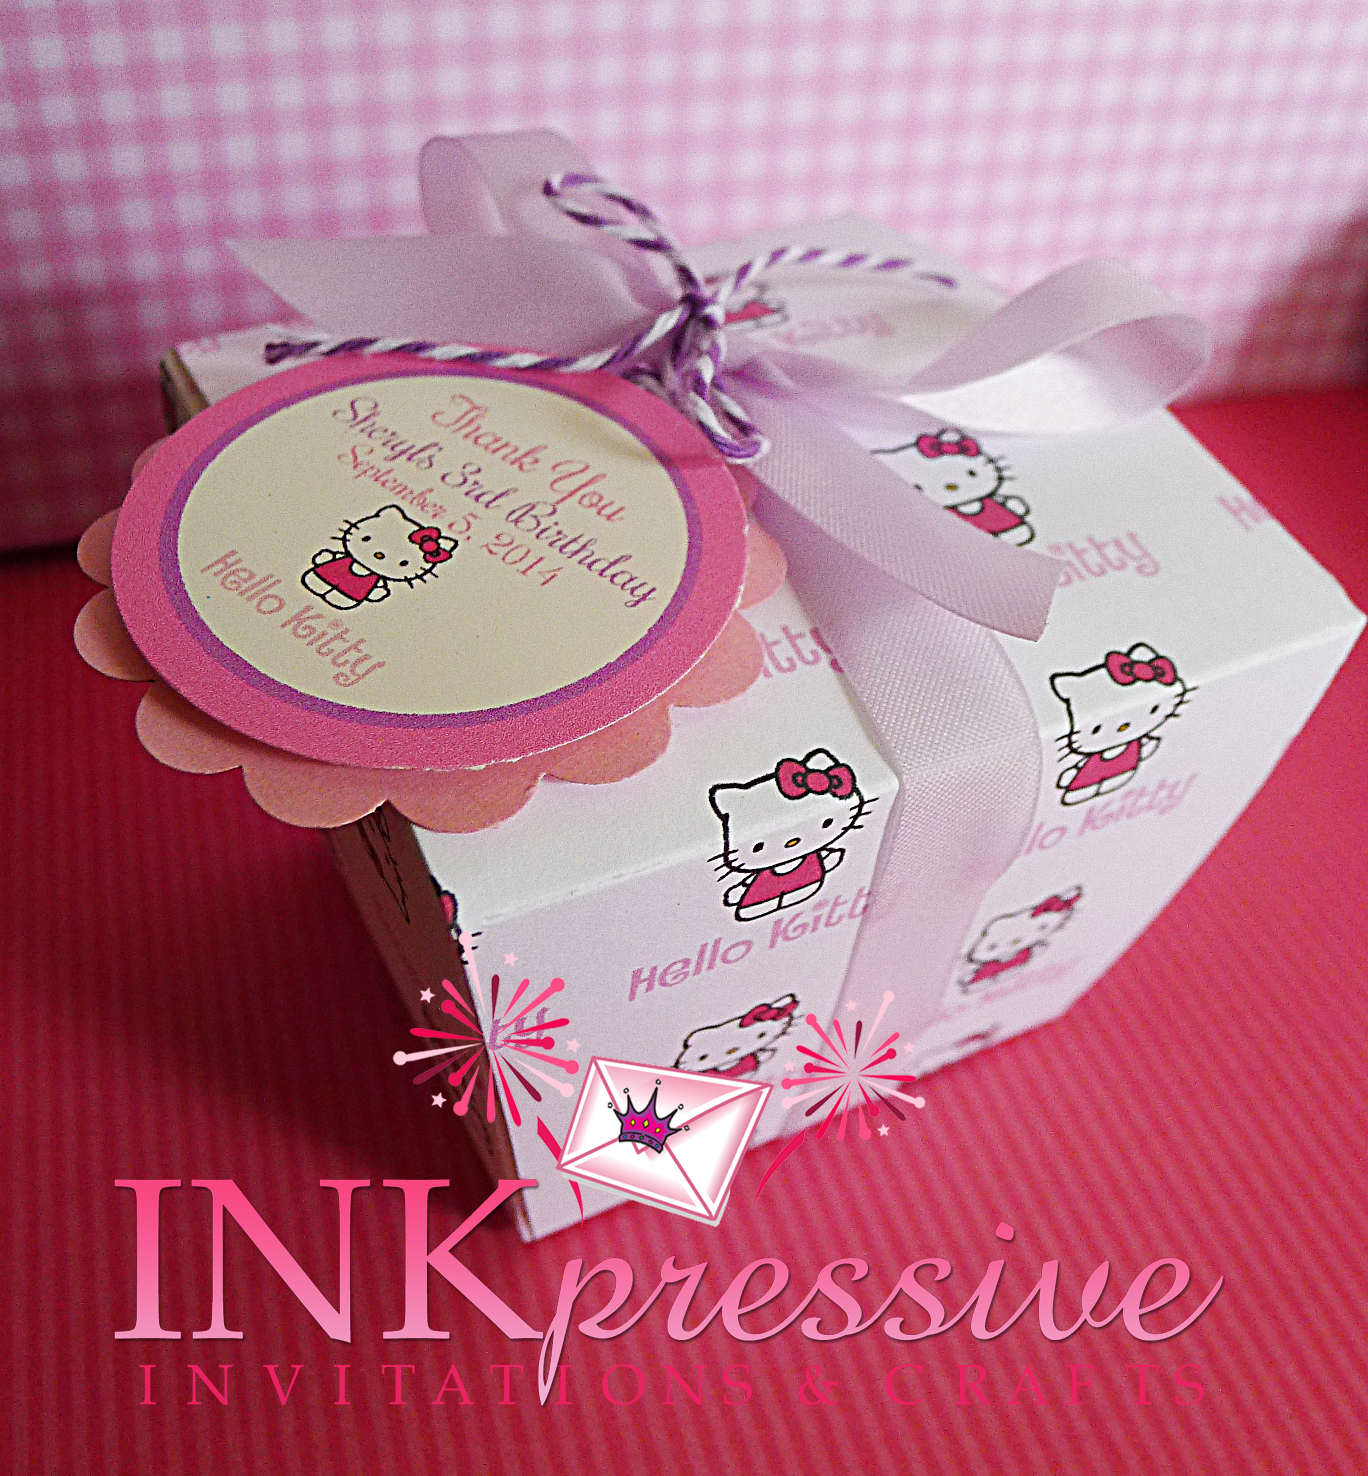 INKPRESSIVE INVITATIONS: July 2013